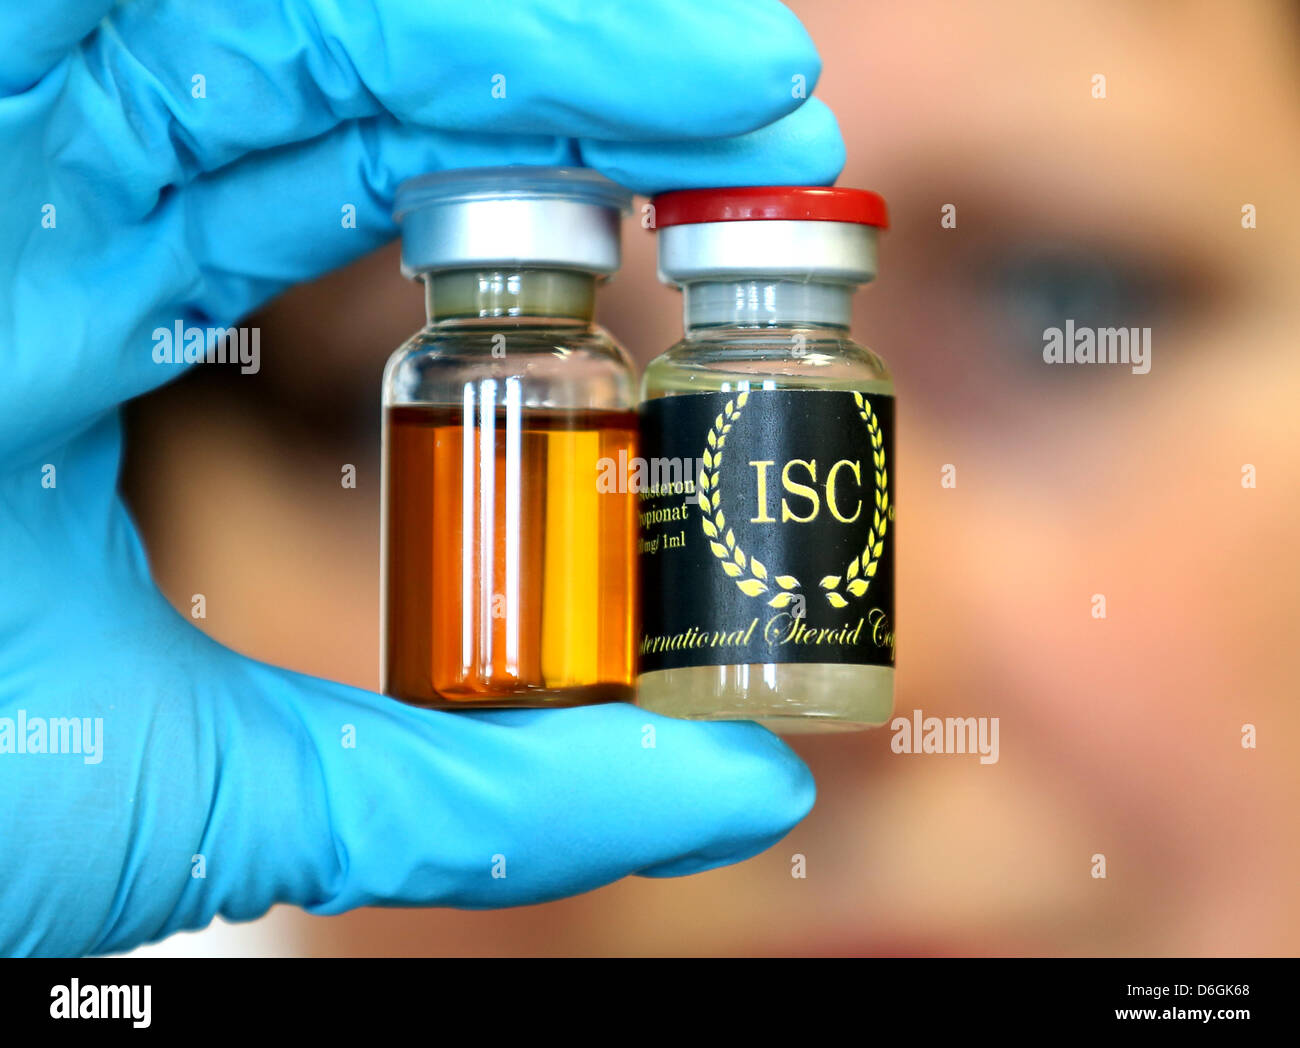 Where can i get steroids in germany source check steroids